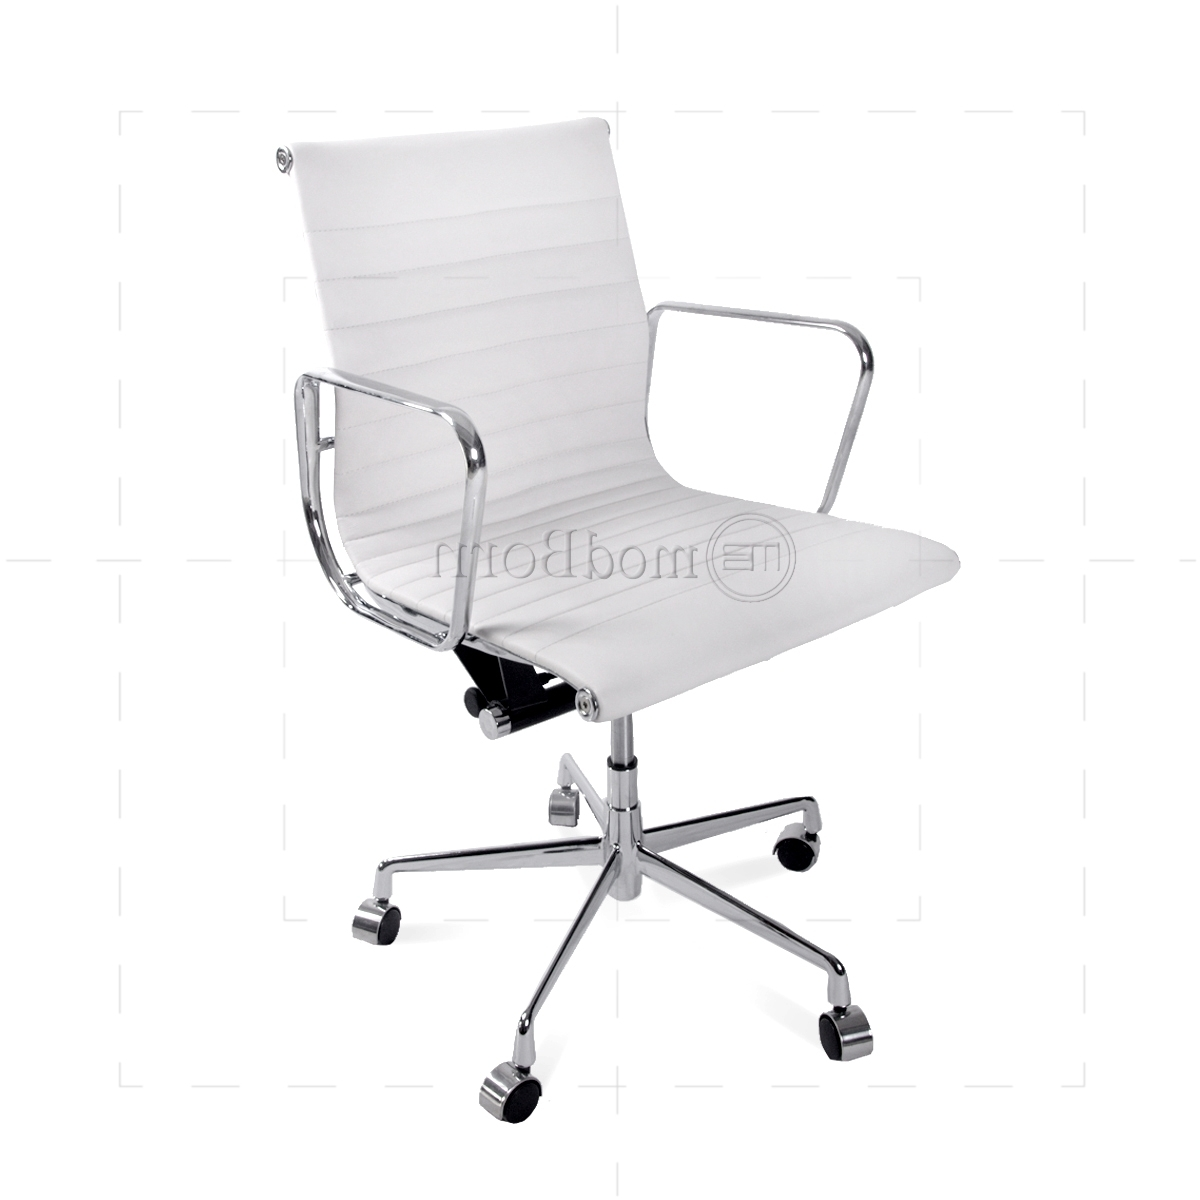 Executive Office Chairs With Flip Up Arms Regarding Well Known Chair : High Back White Leather Executive Office Chair With Flip (Gallery 20 of 20)